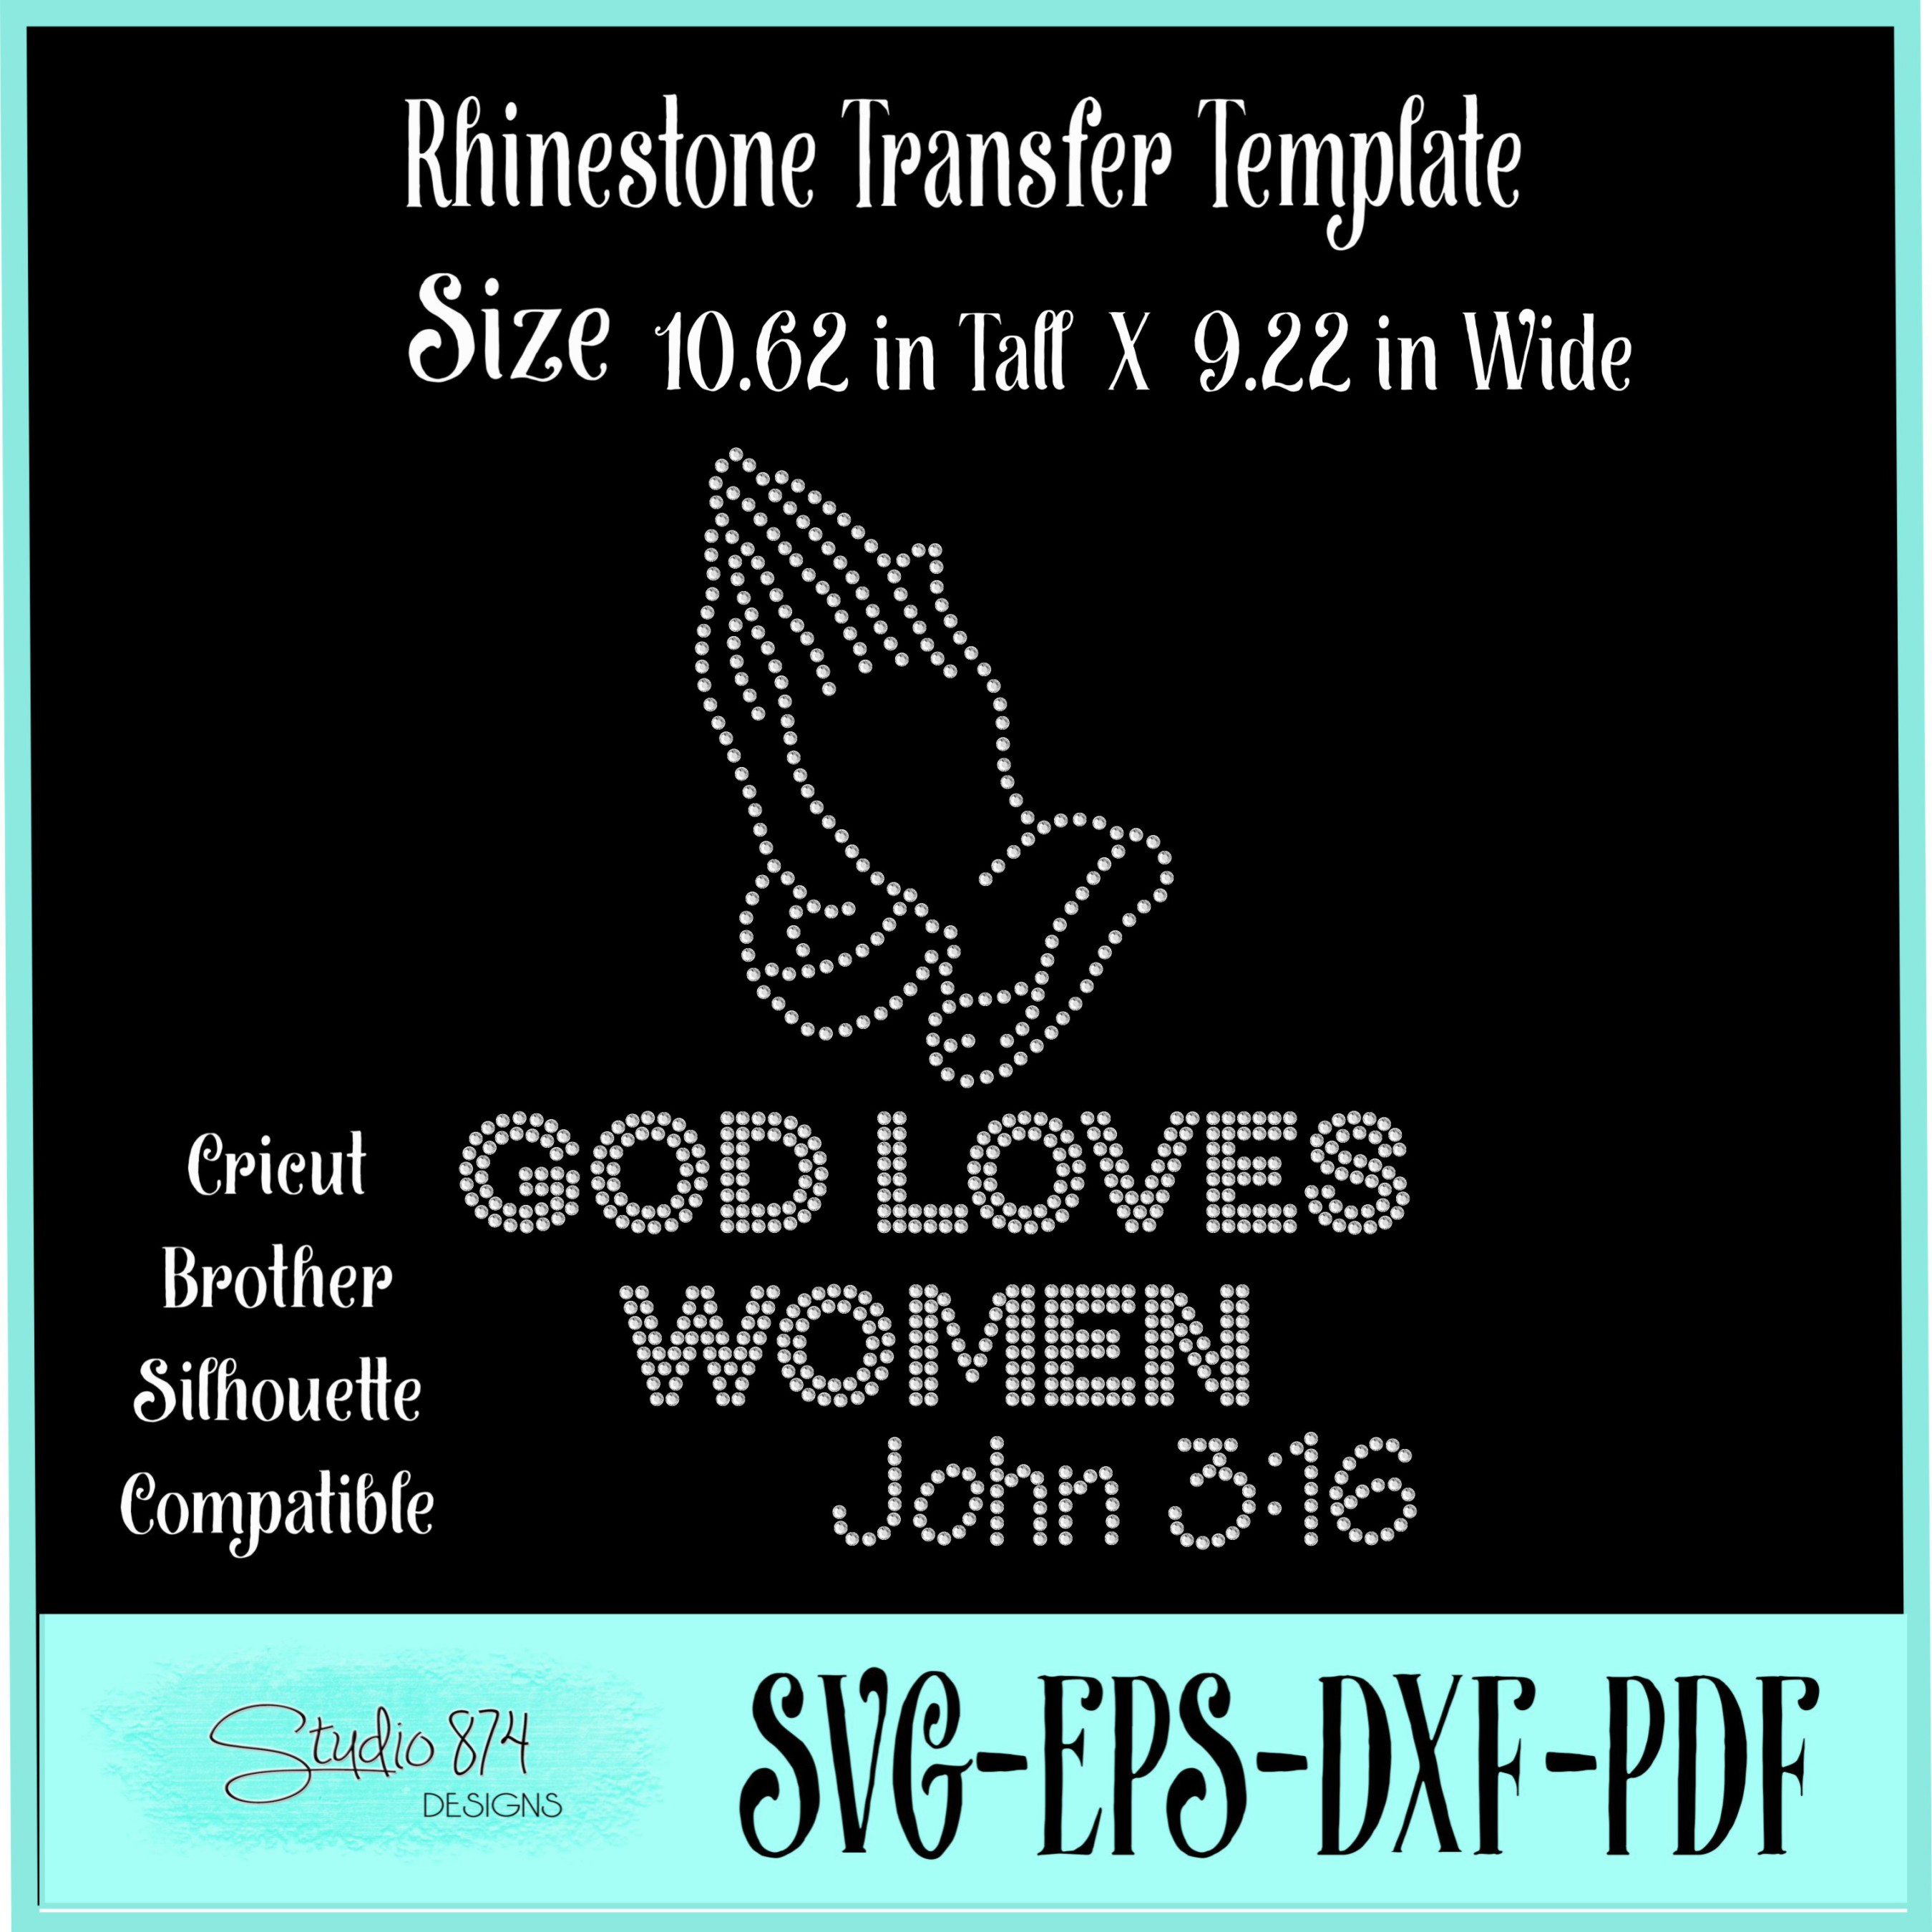 Faith Religious Rhinestone SVG Template - God Loves Women example image 2